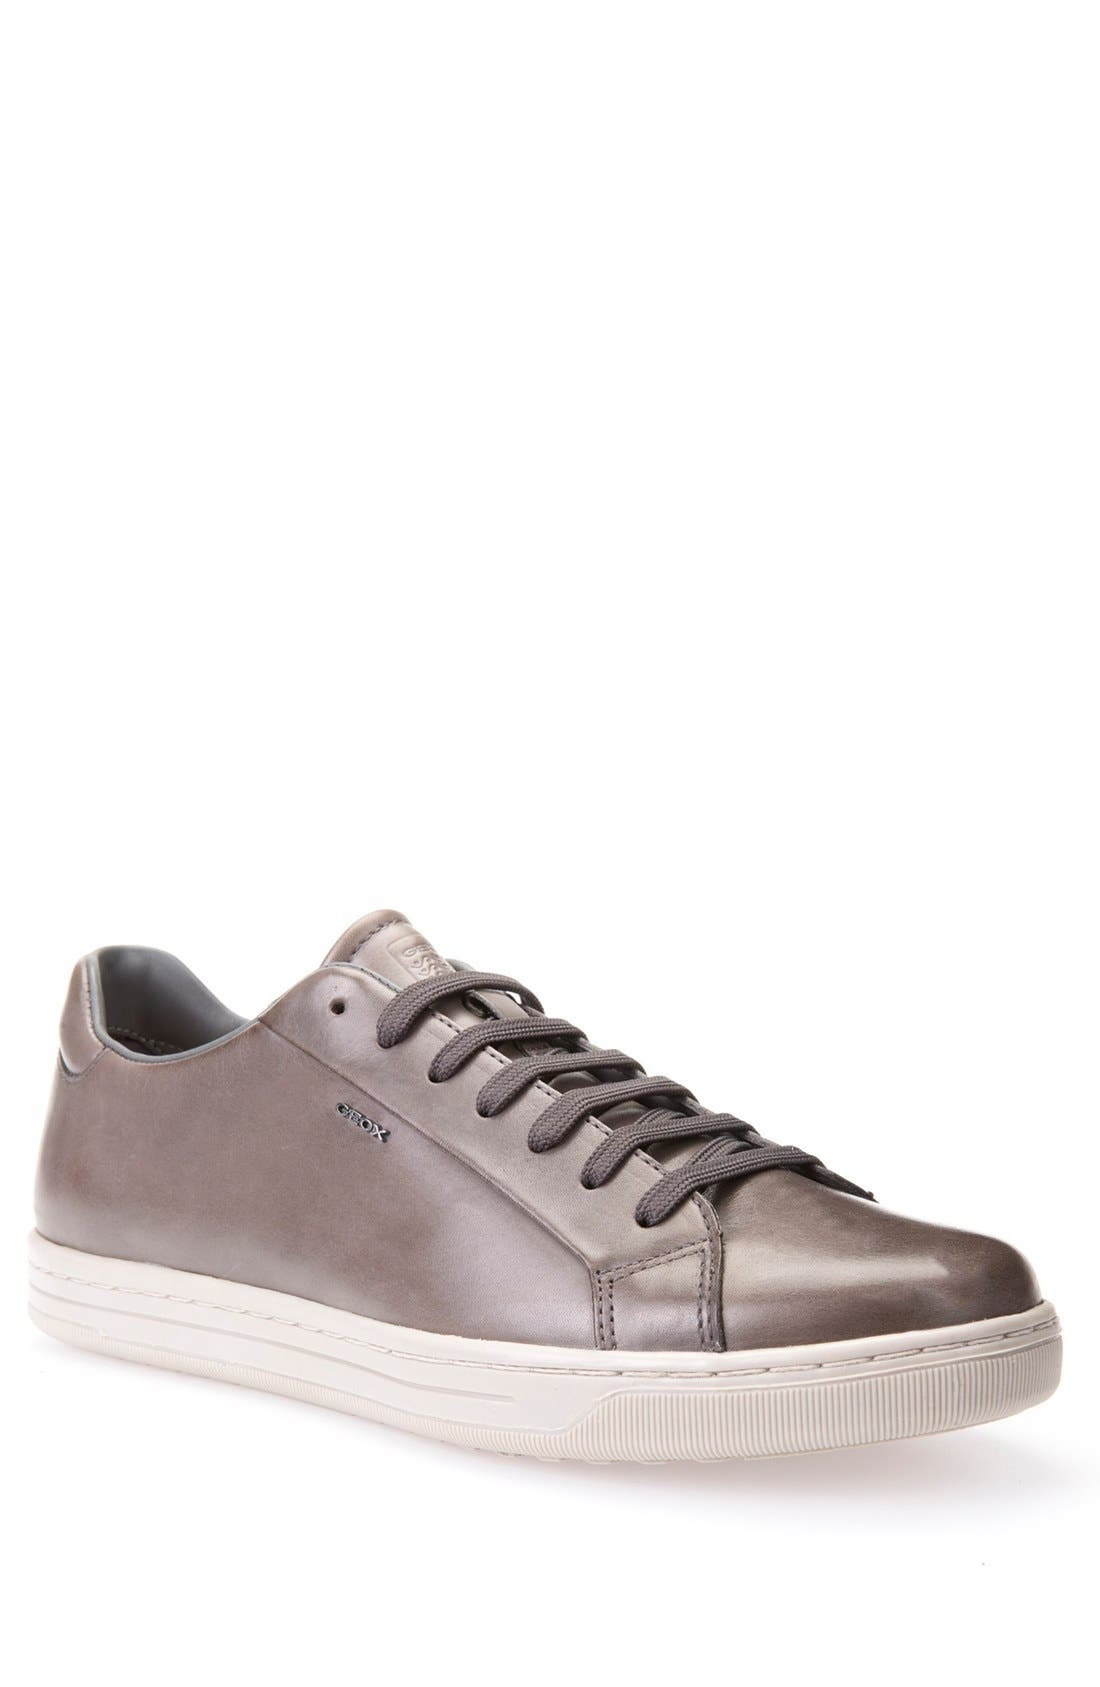 Geox Ricky Leather Sneaker (Men)